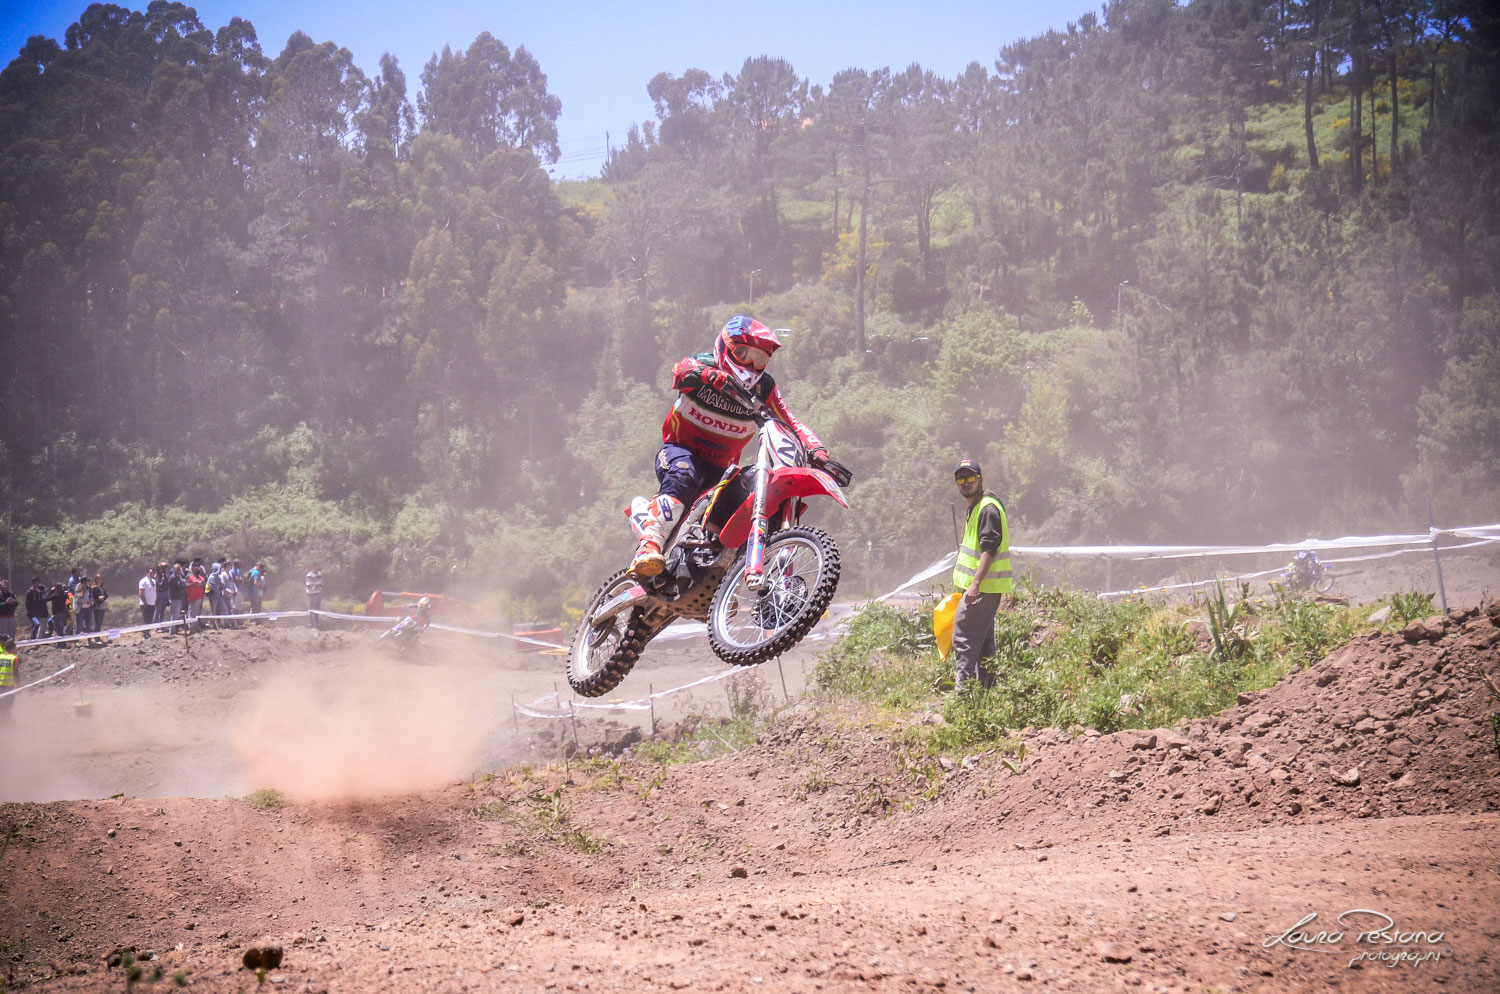 A Rider jumping on a motocross track